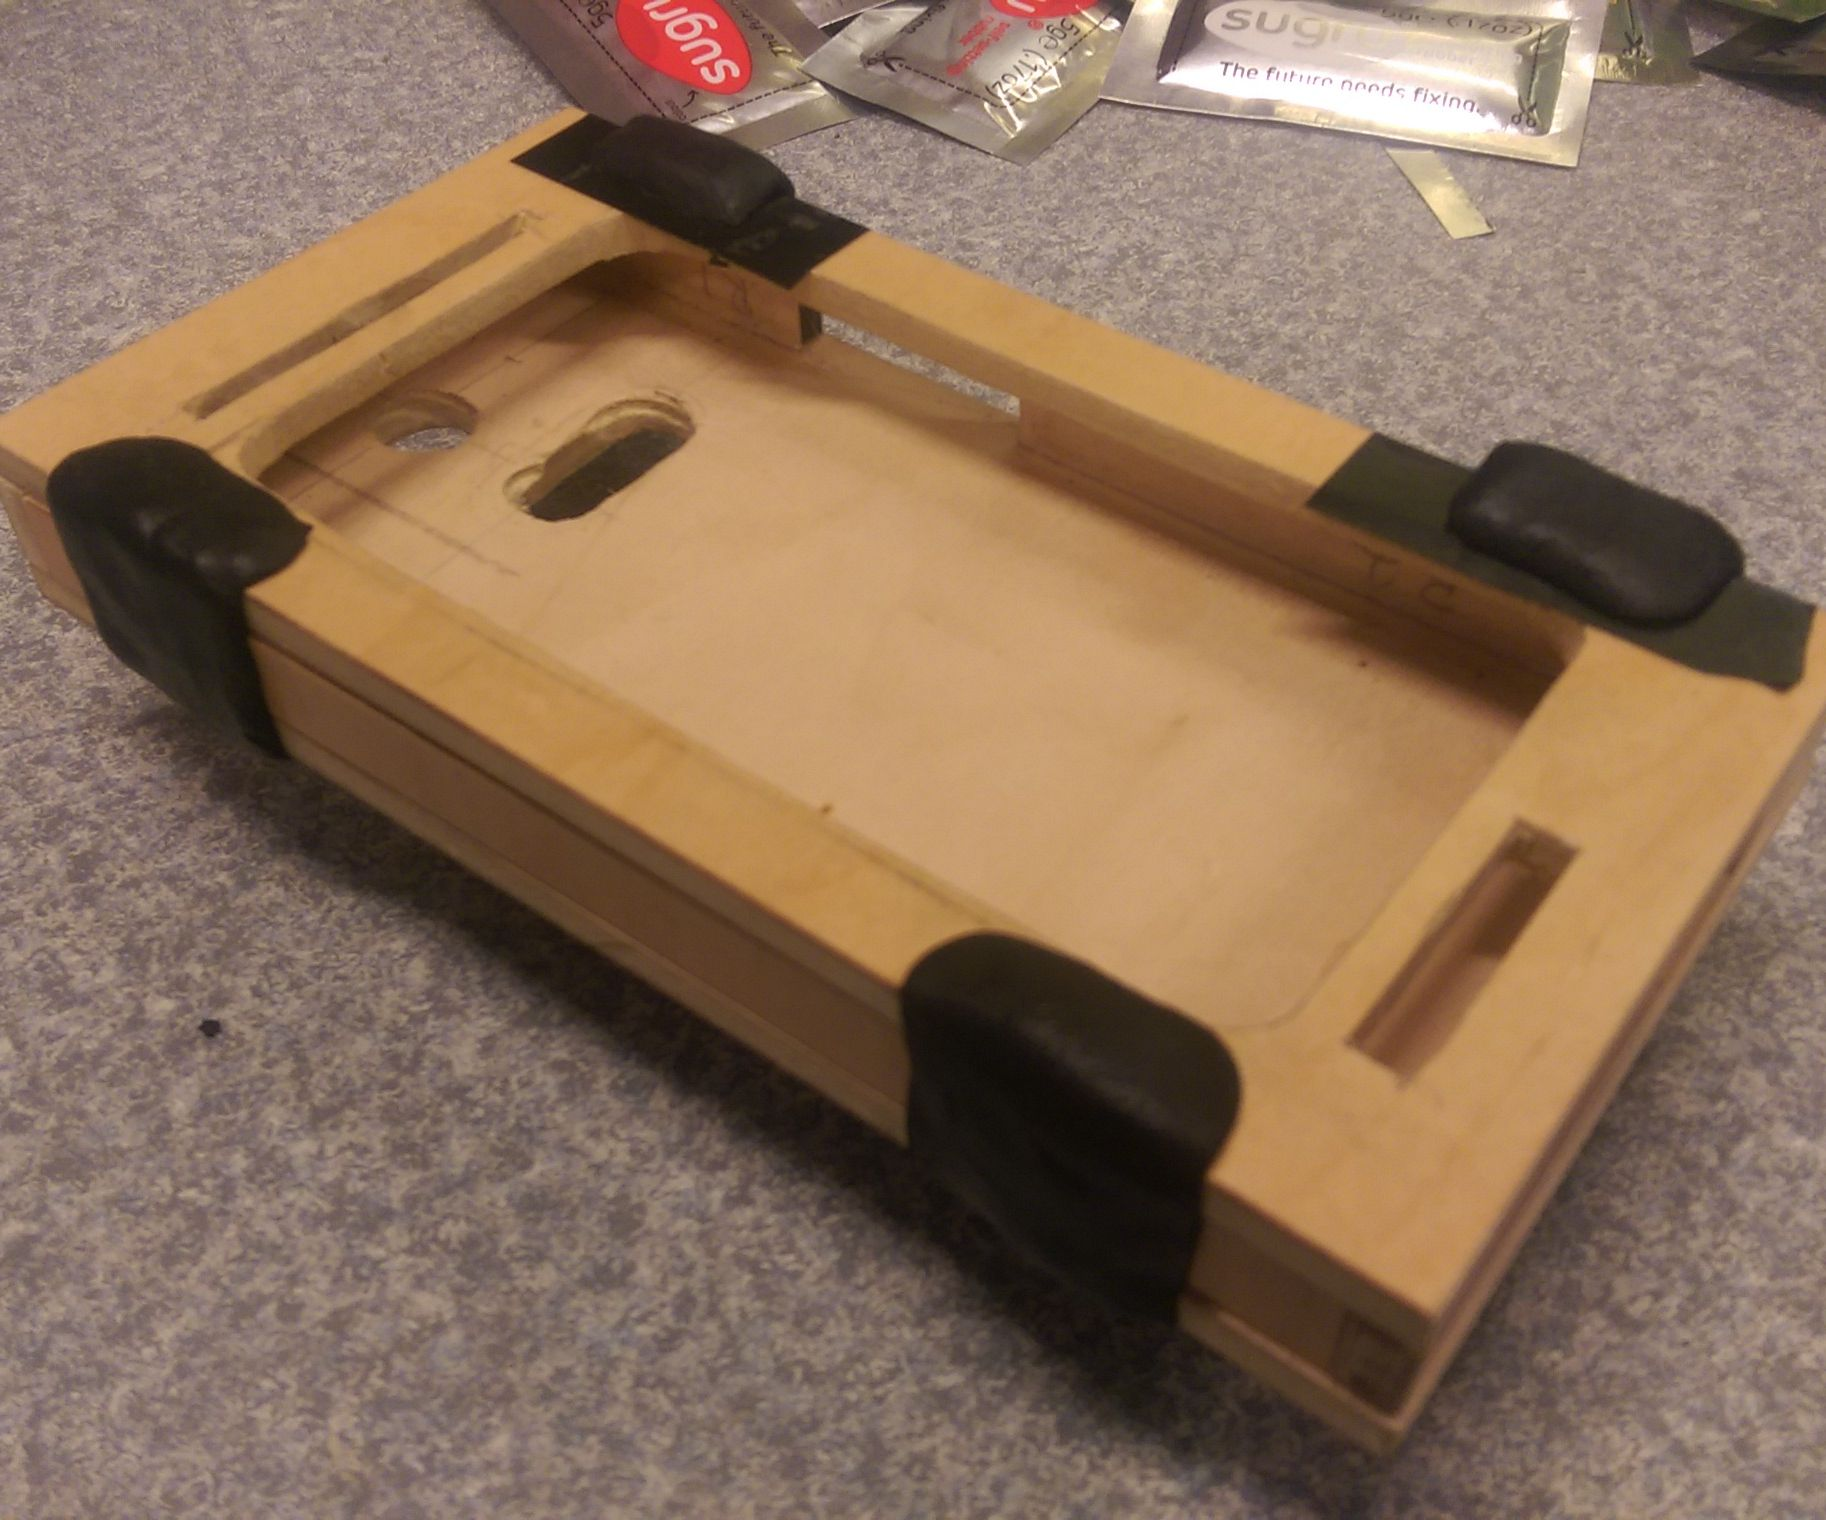 Classy wood Phone case with Sugru hinge and latch